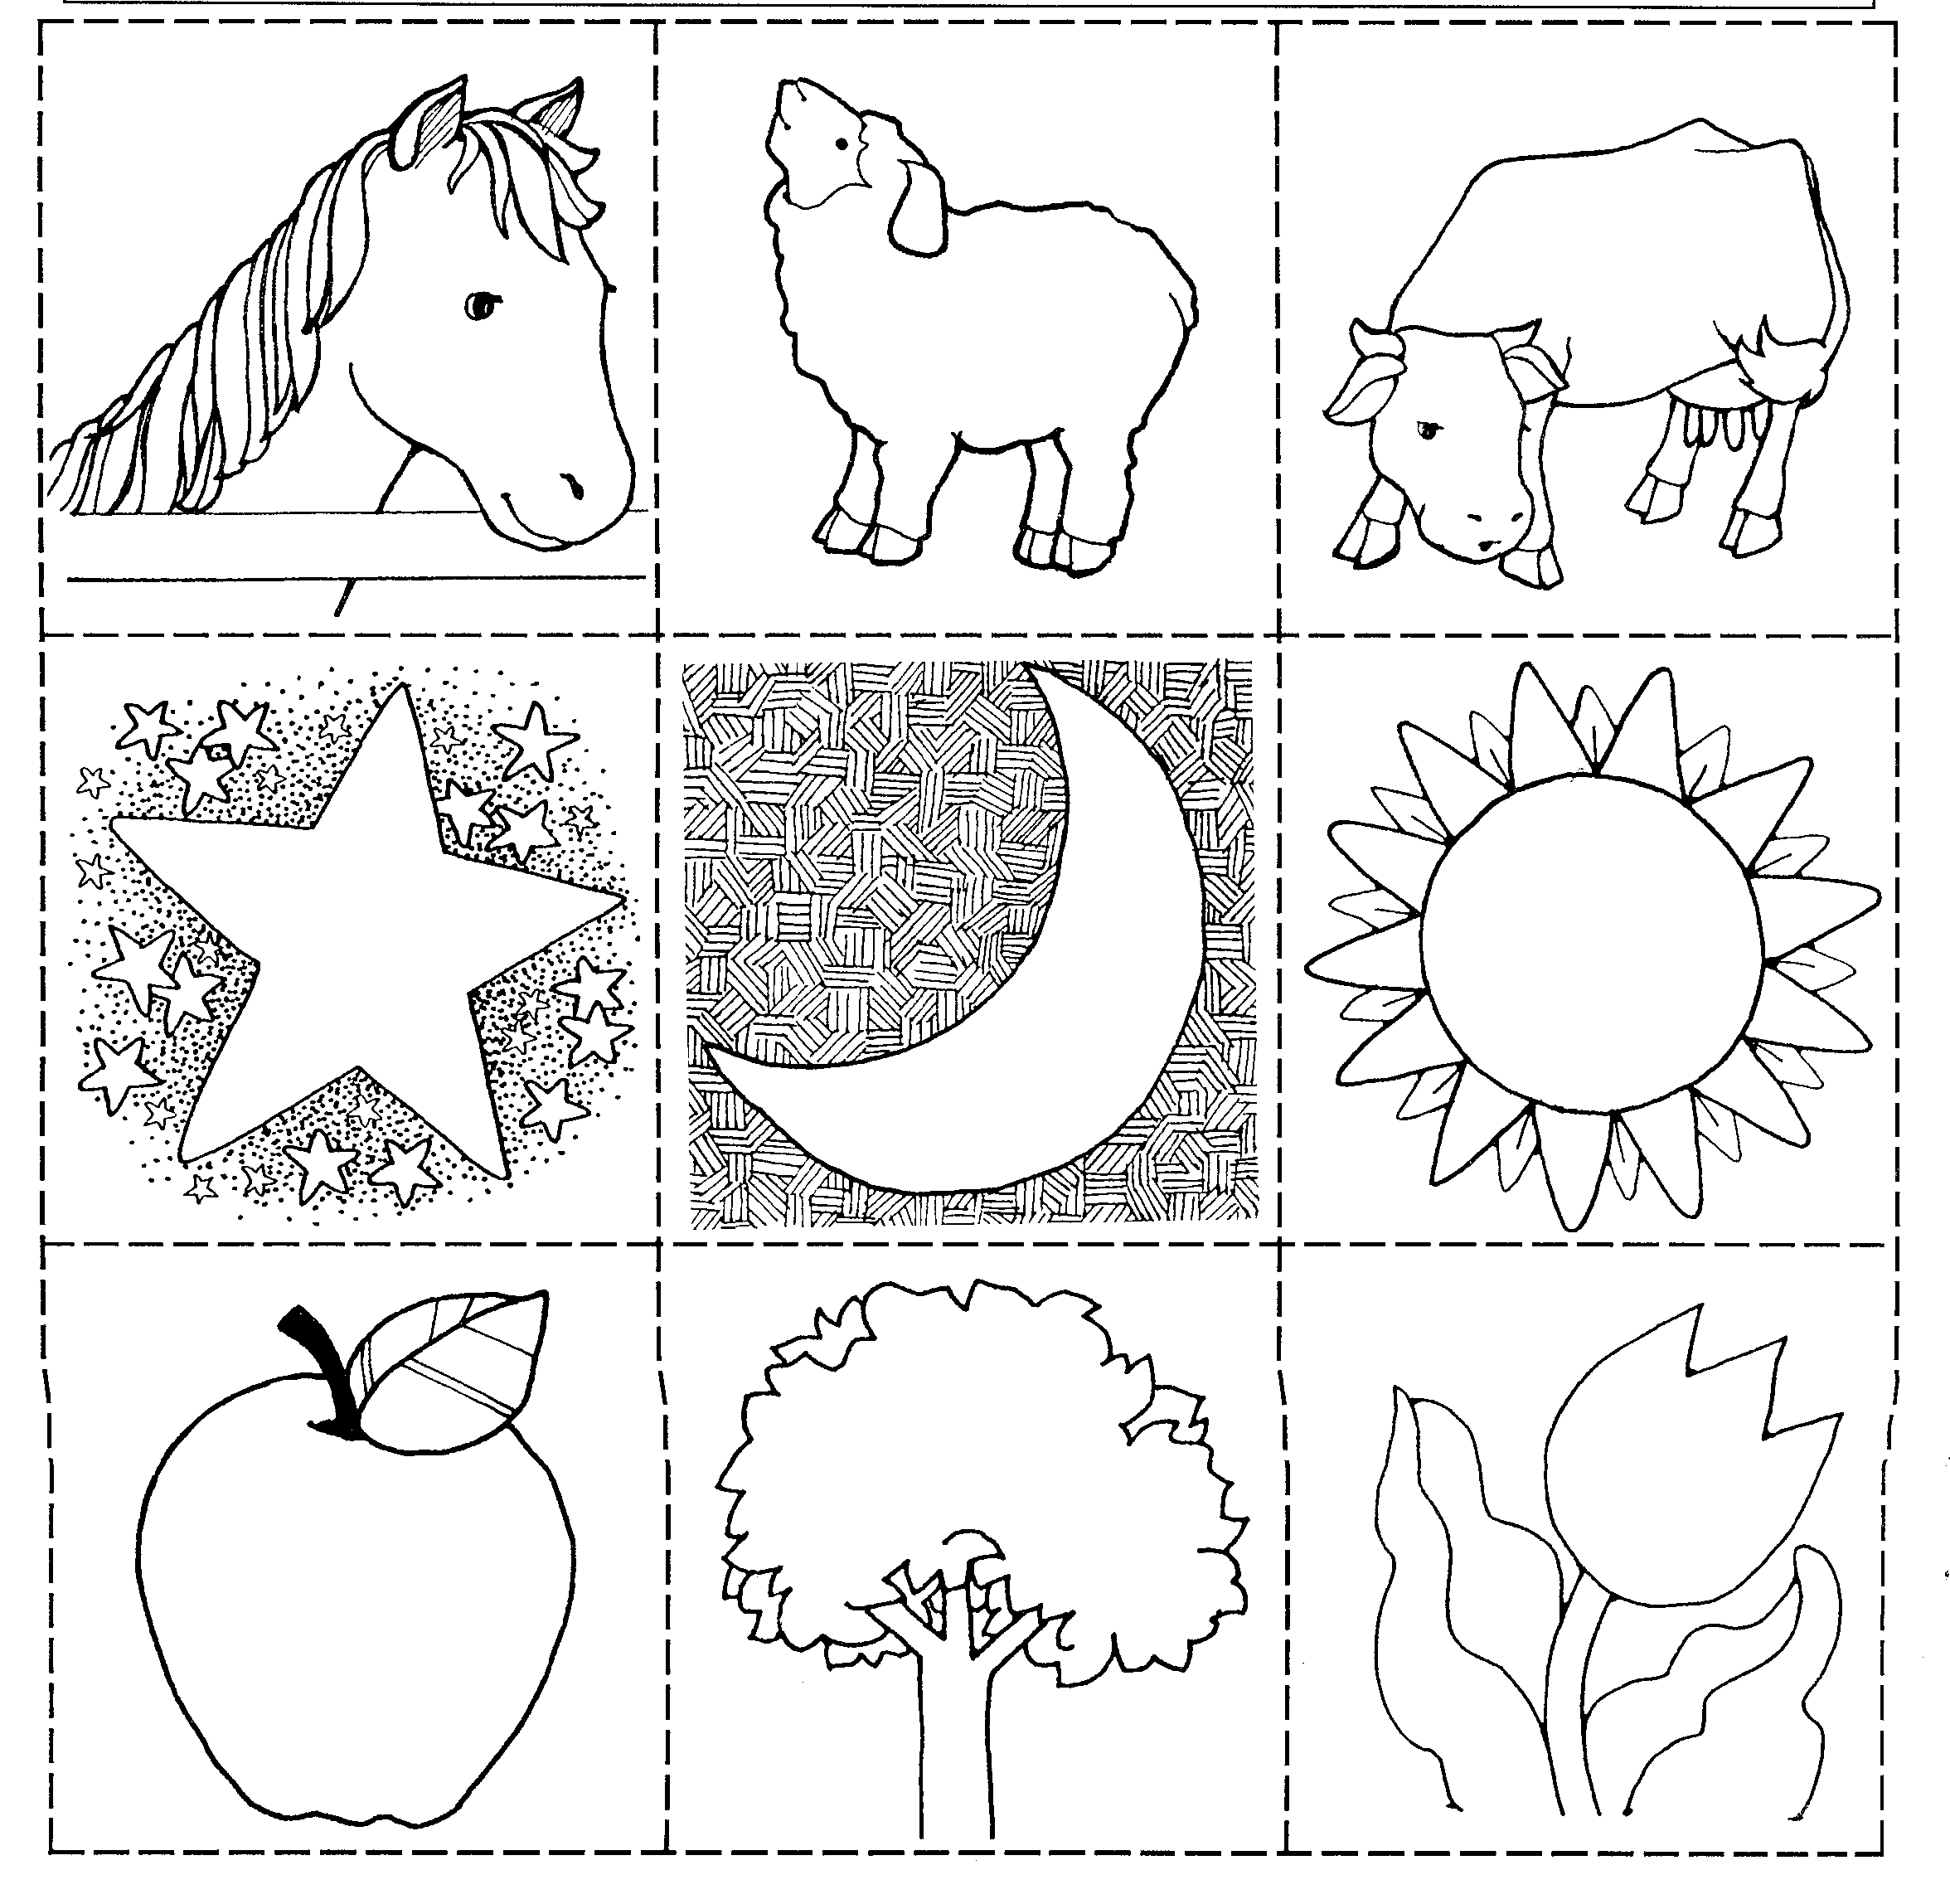 The Line Art And Living : Nursery game jenny smith s lds ideas bookstore